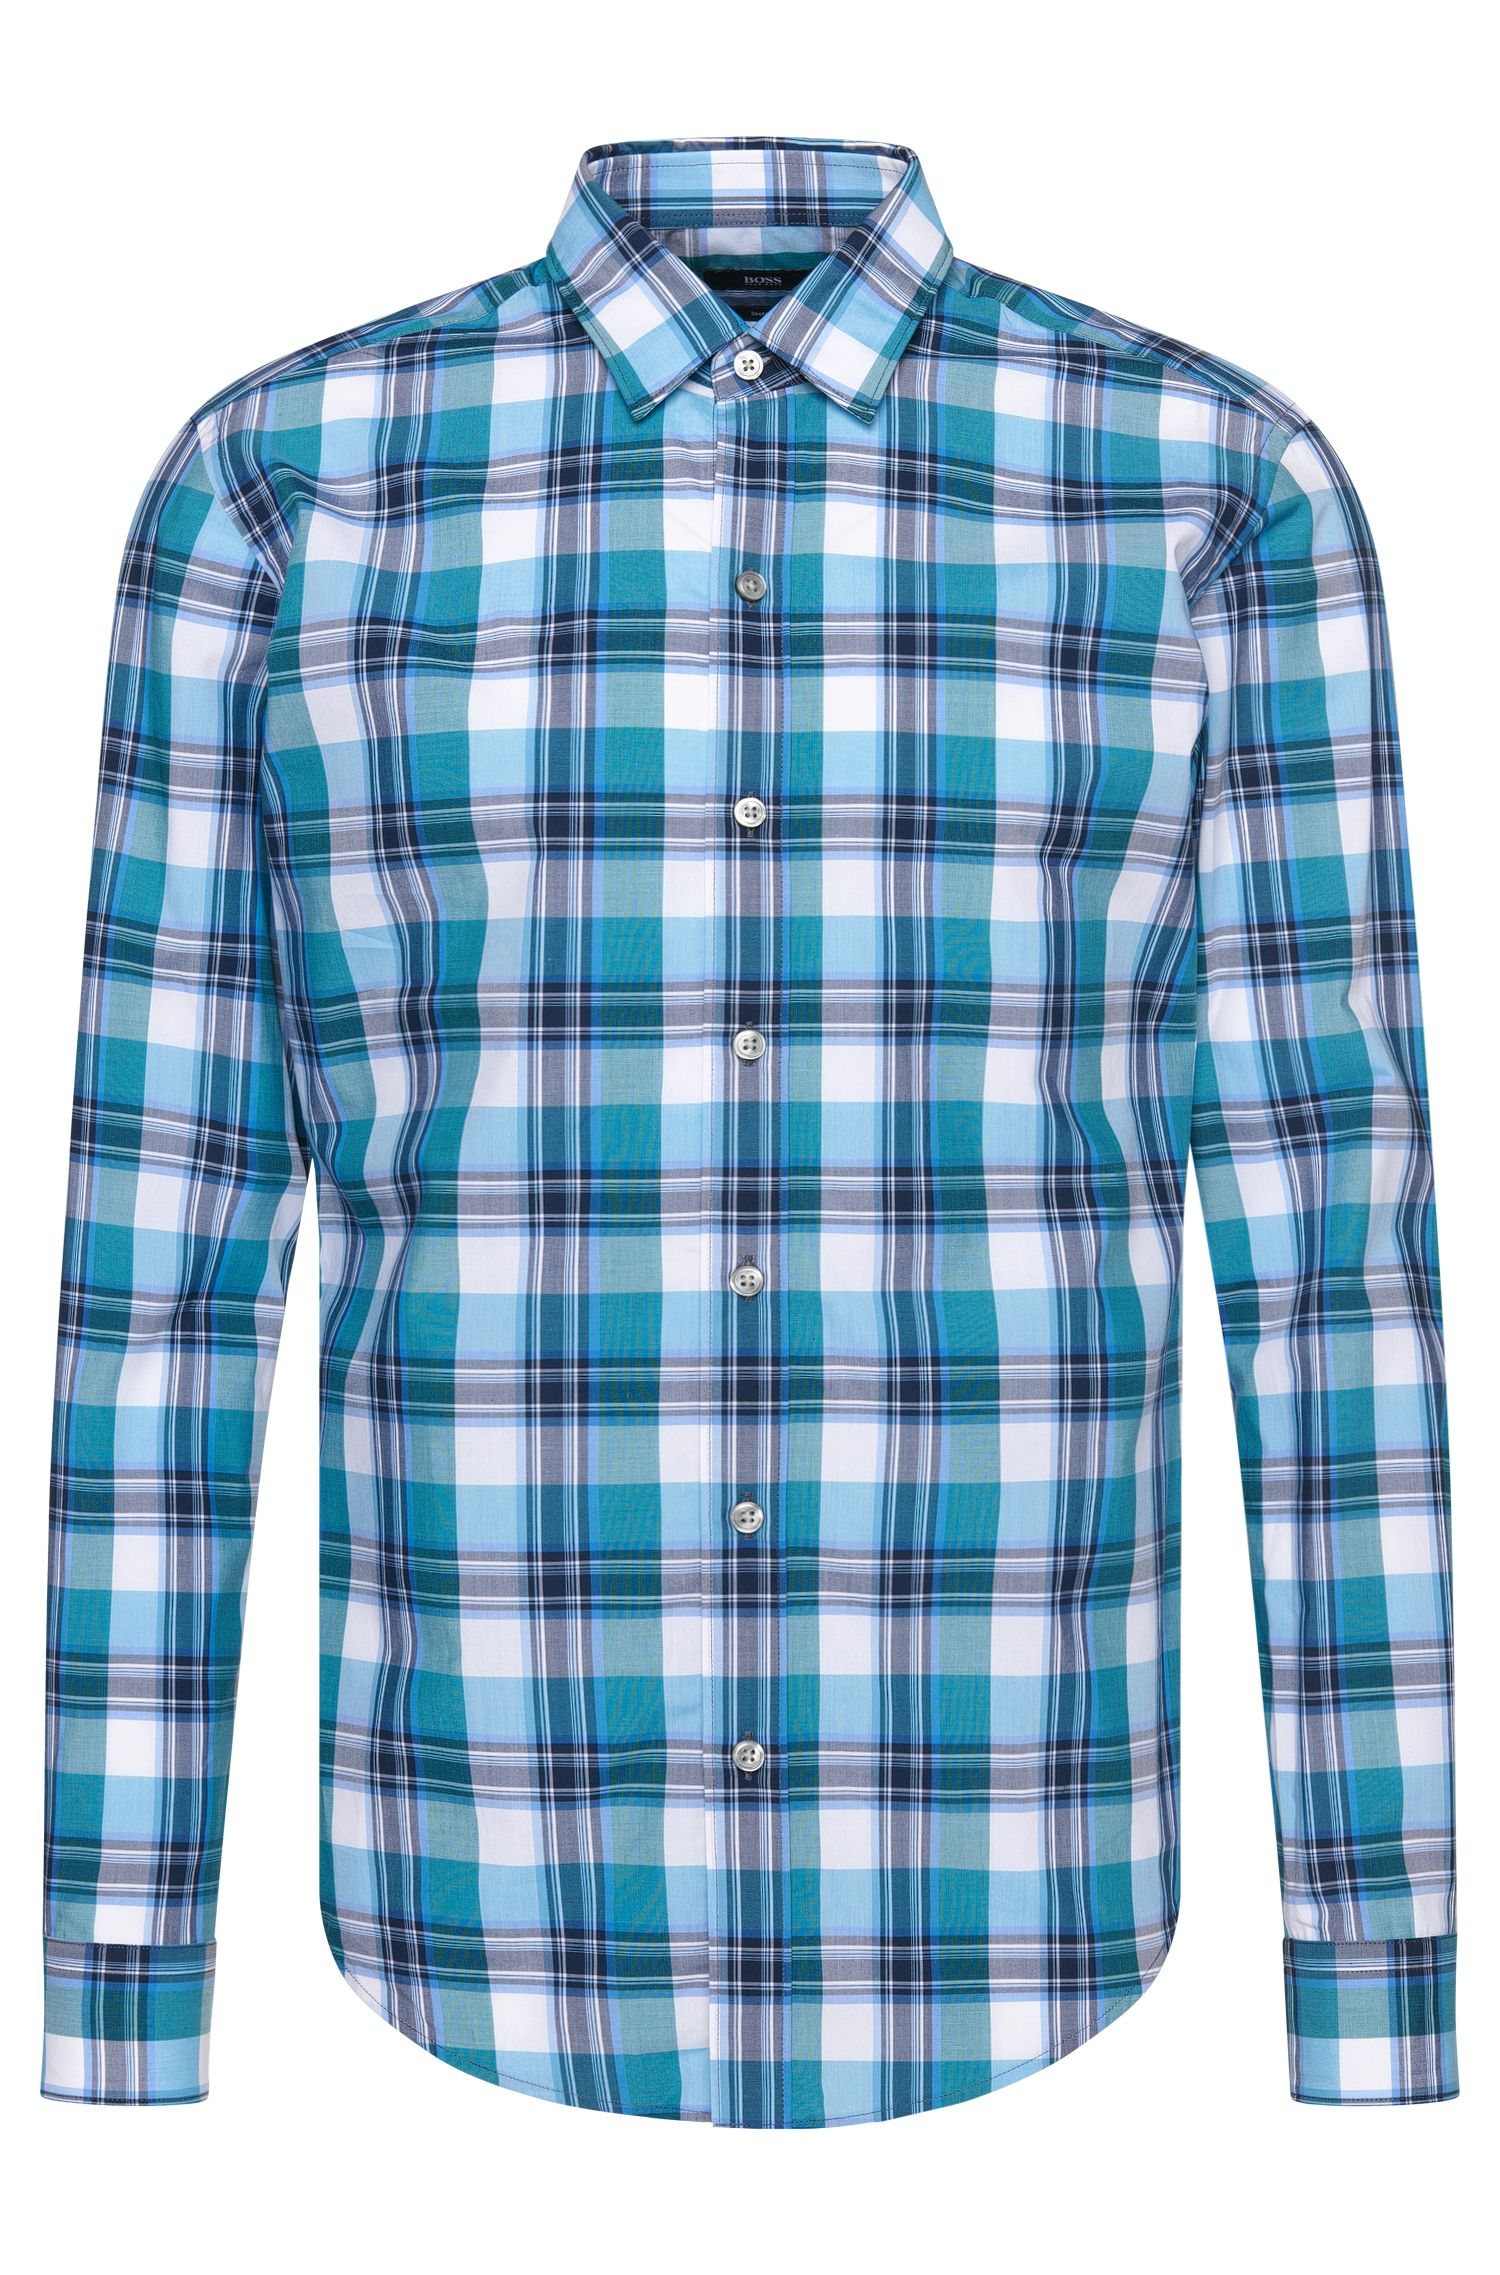 Cotton Button Down Shirt, Slim Fit | Robbie